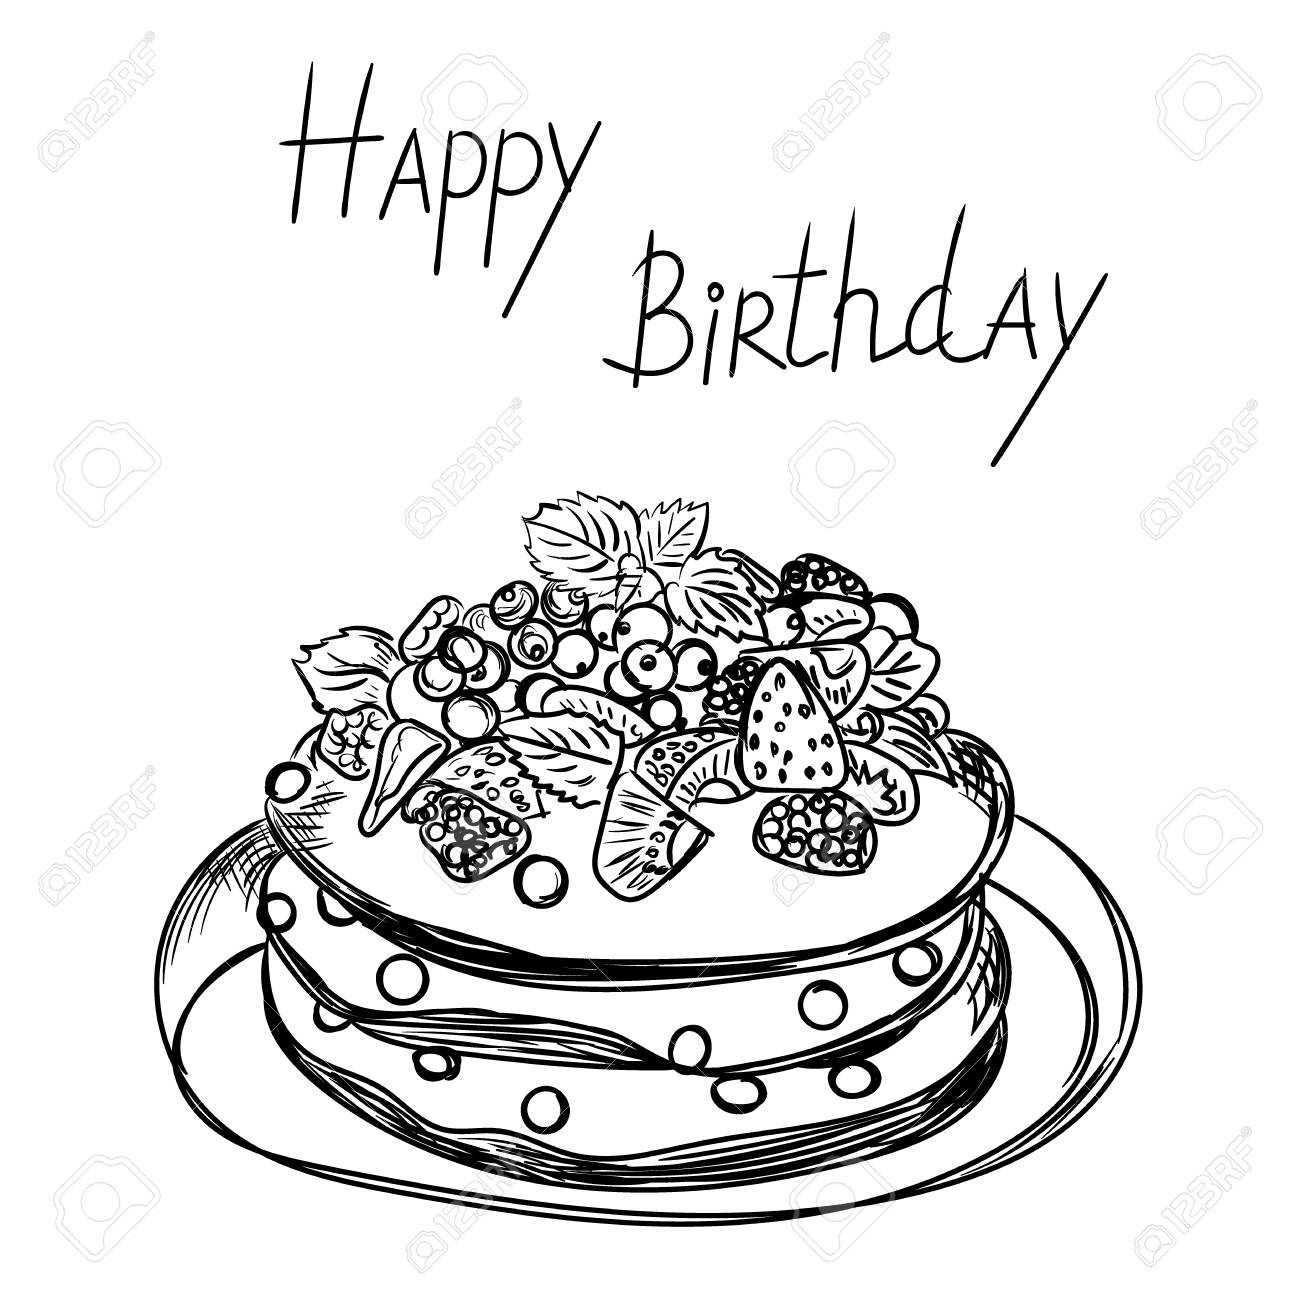 1300x1300 Birthday Cake In Sketch Style Royalty Free Cliparts Vectors